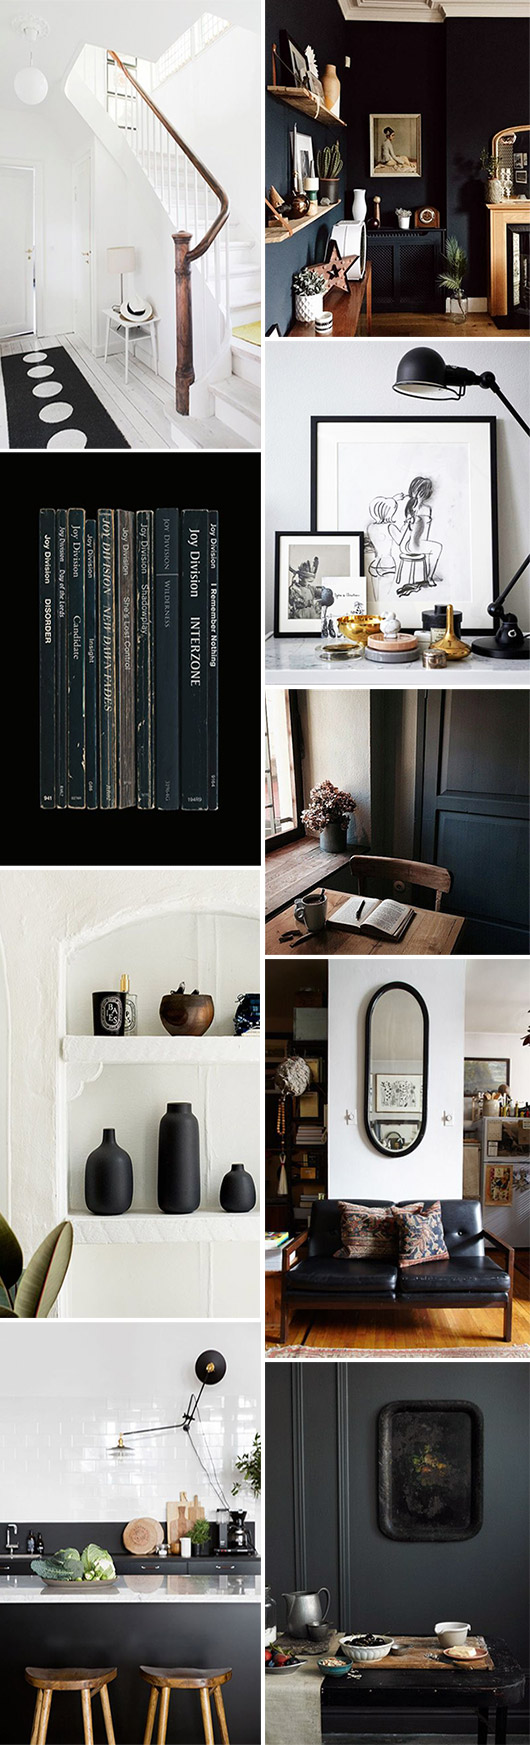 black and white home decor inspiration. / sfgirlbybay